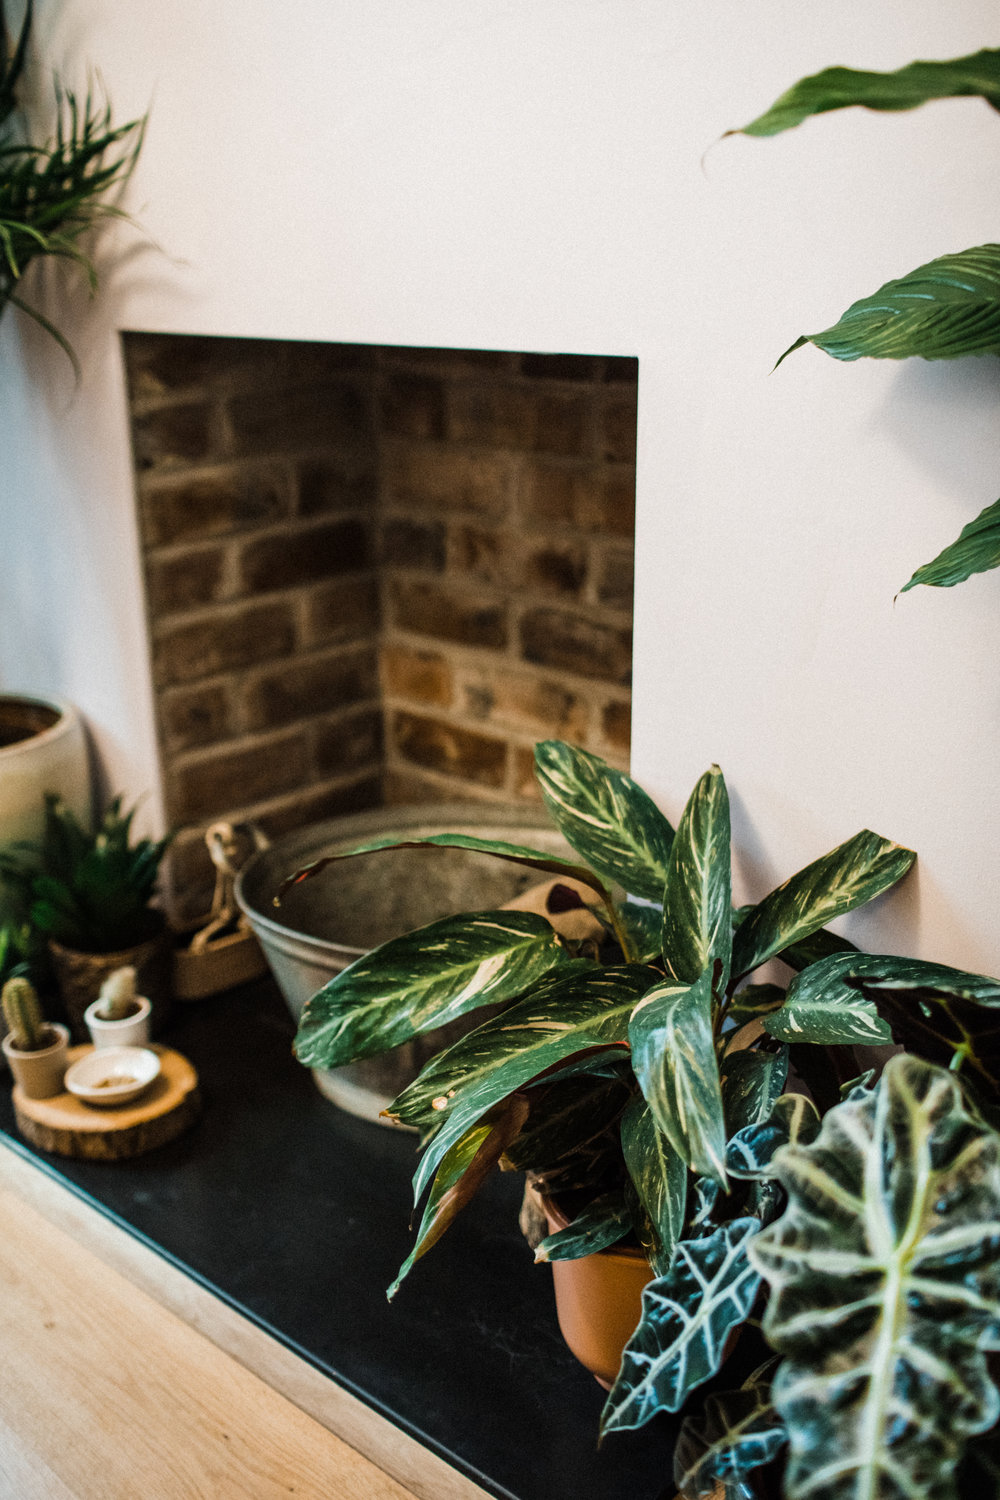 House plants purify the air